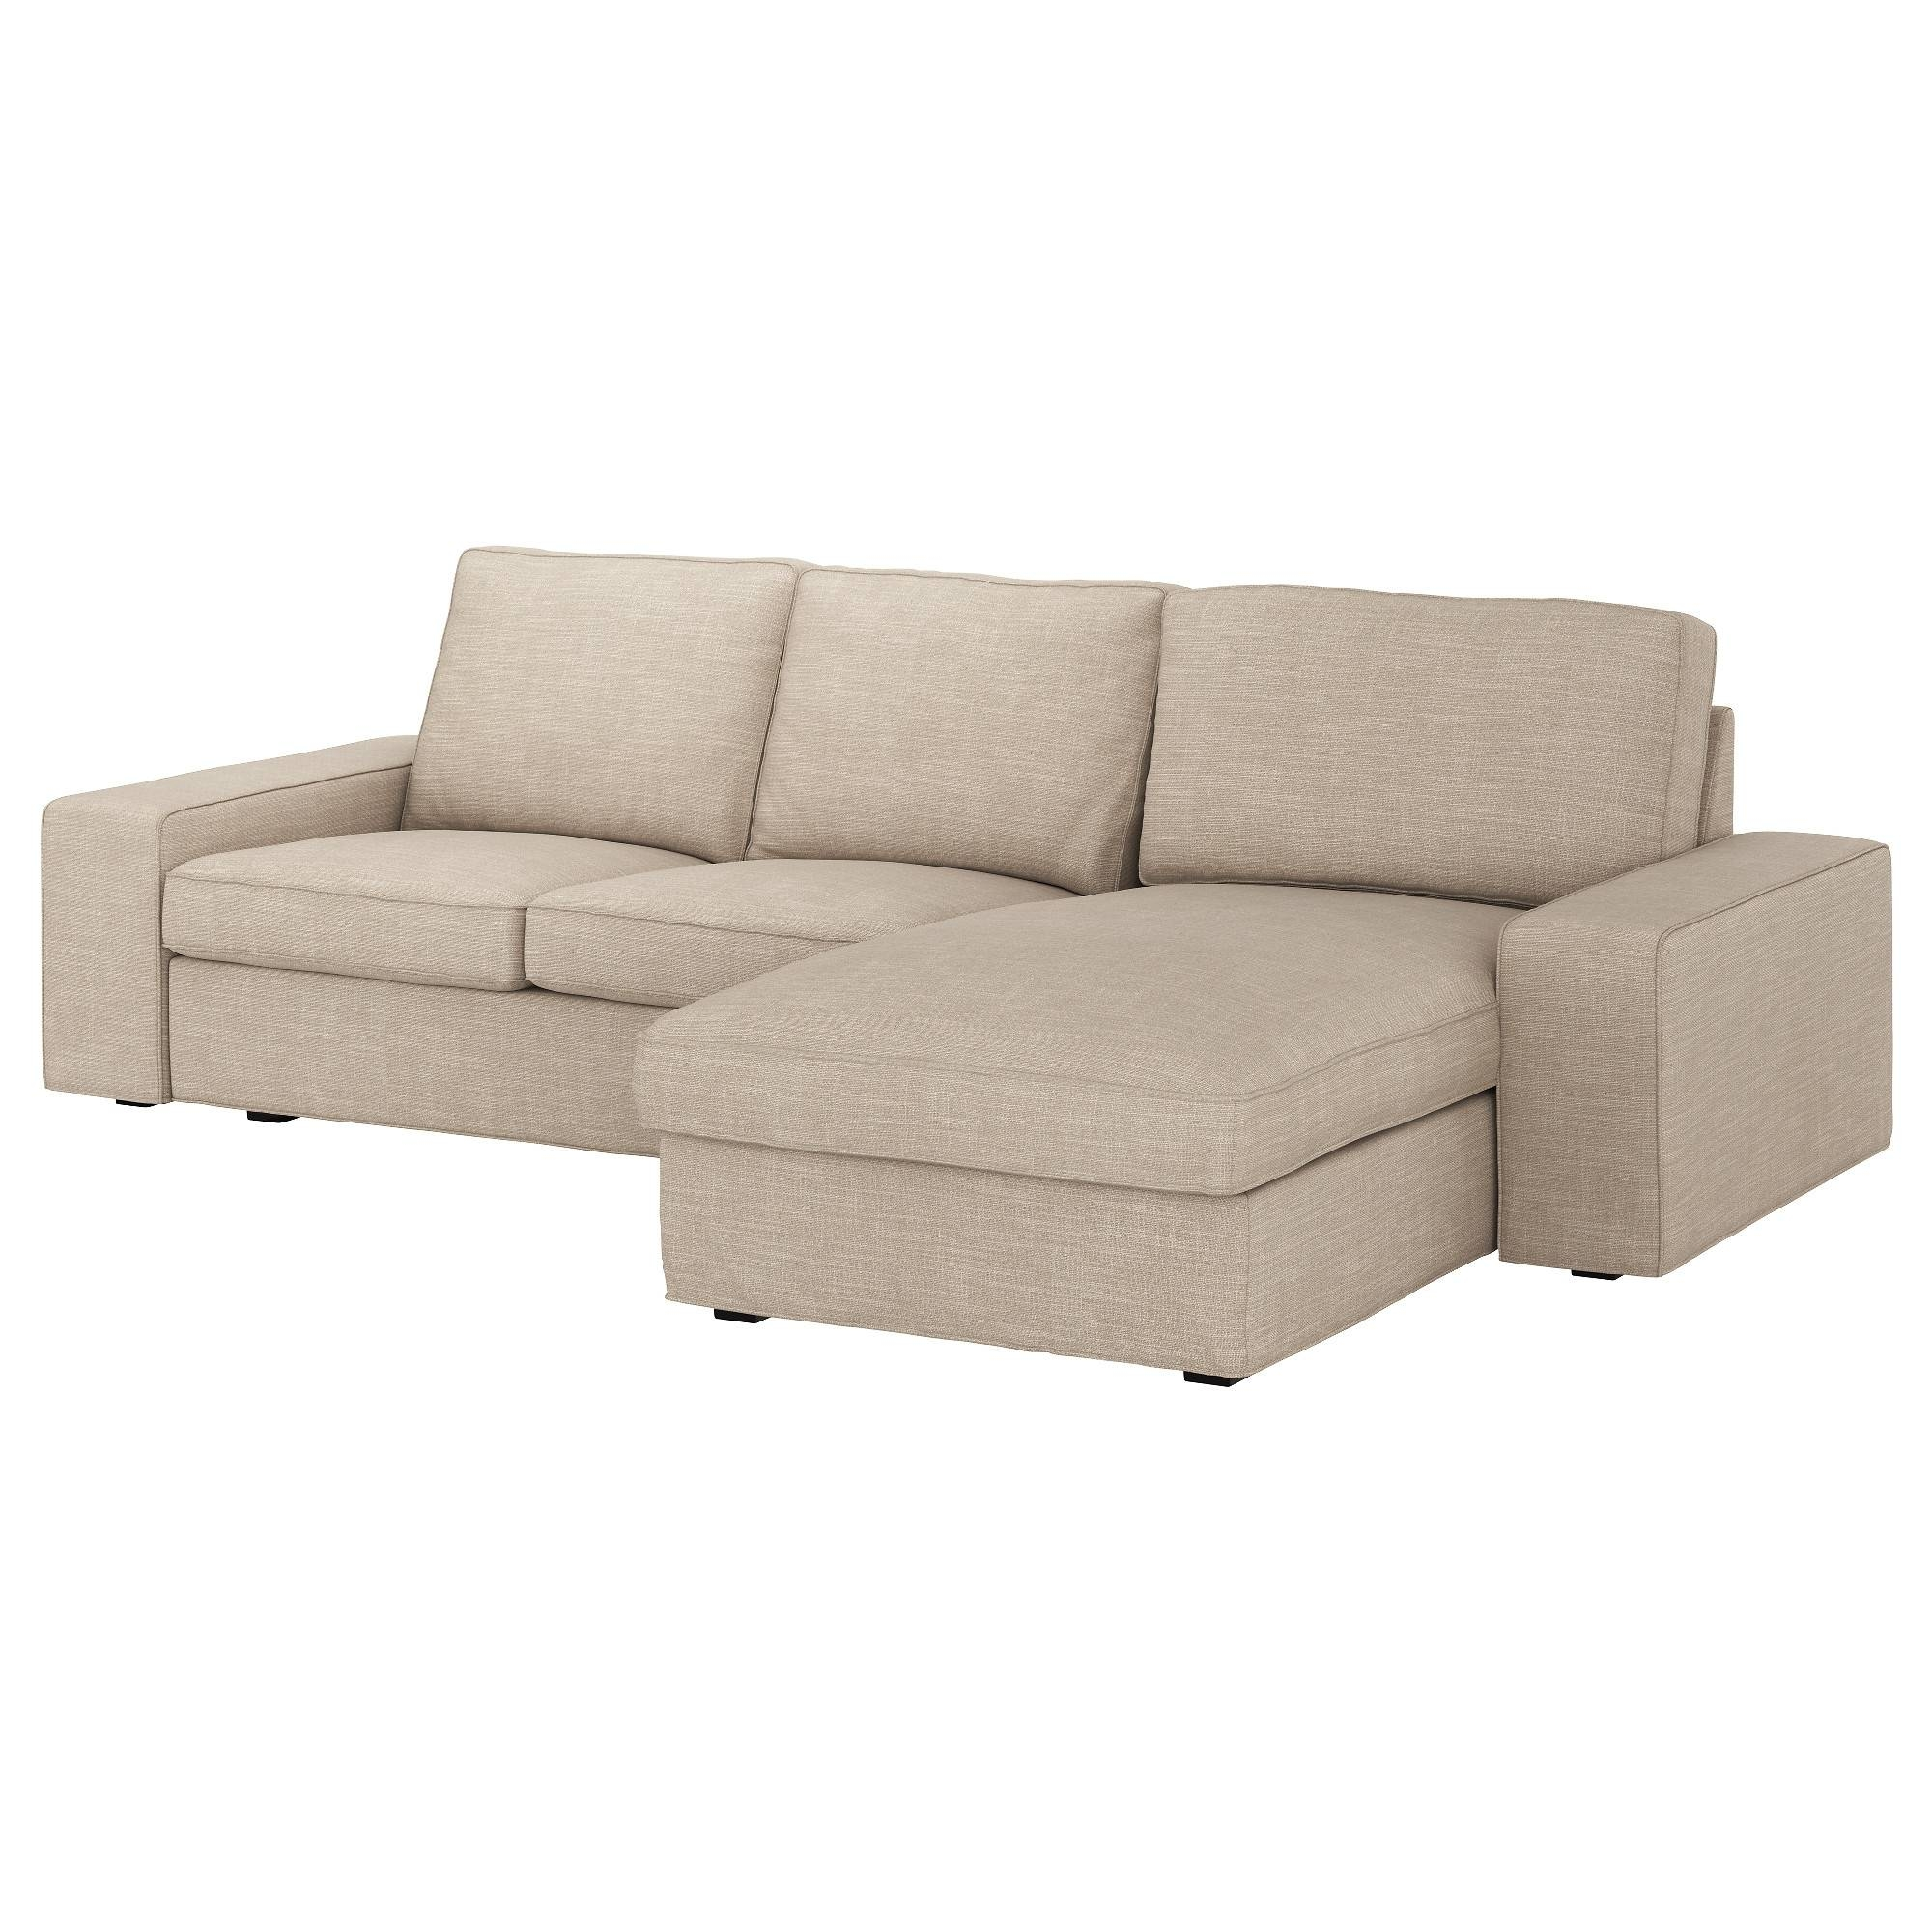 Kivik Two-Seat Sofa And Chaise Longue Hillared Beige - Ikea throughout Ikea Two Seater Sofas (Image 13 of 30)